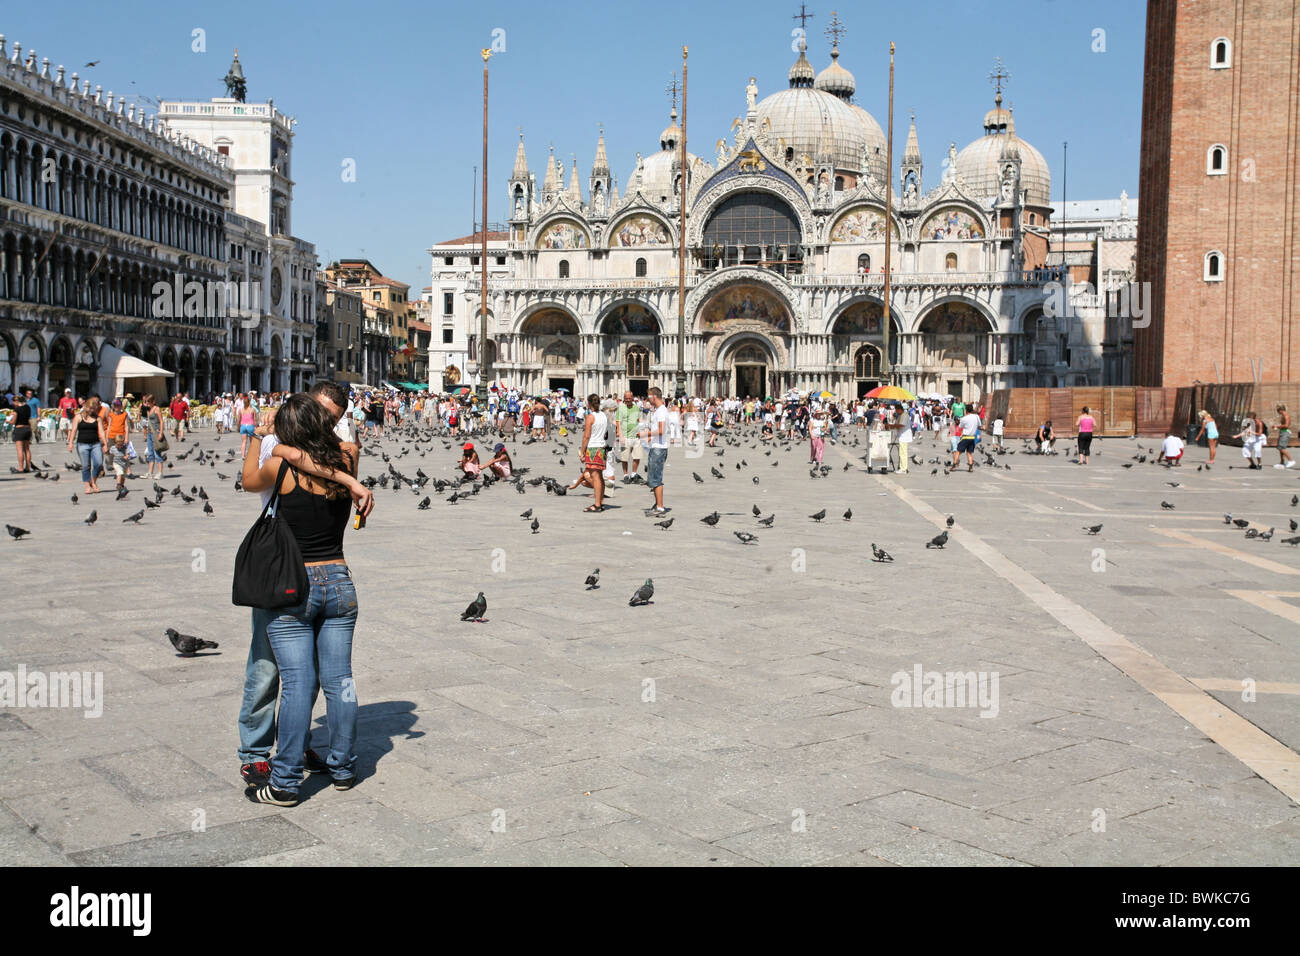 Venice Italy Europe Marco place Couple lovers pigeons people tourists Basilica di San Marco Marco cathedral - Stock Image